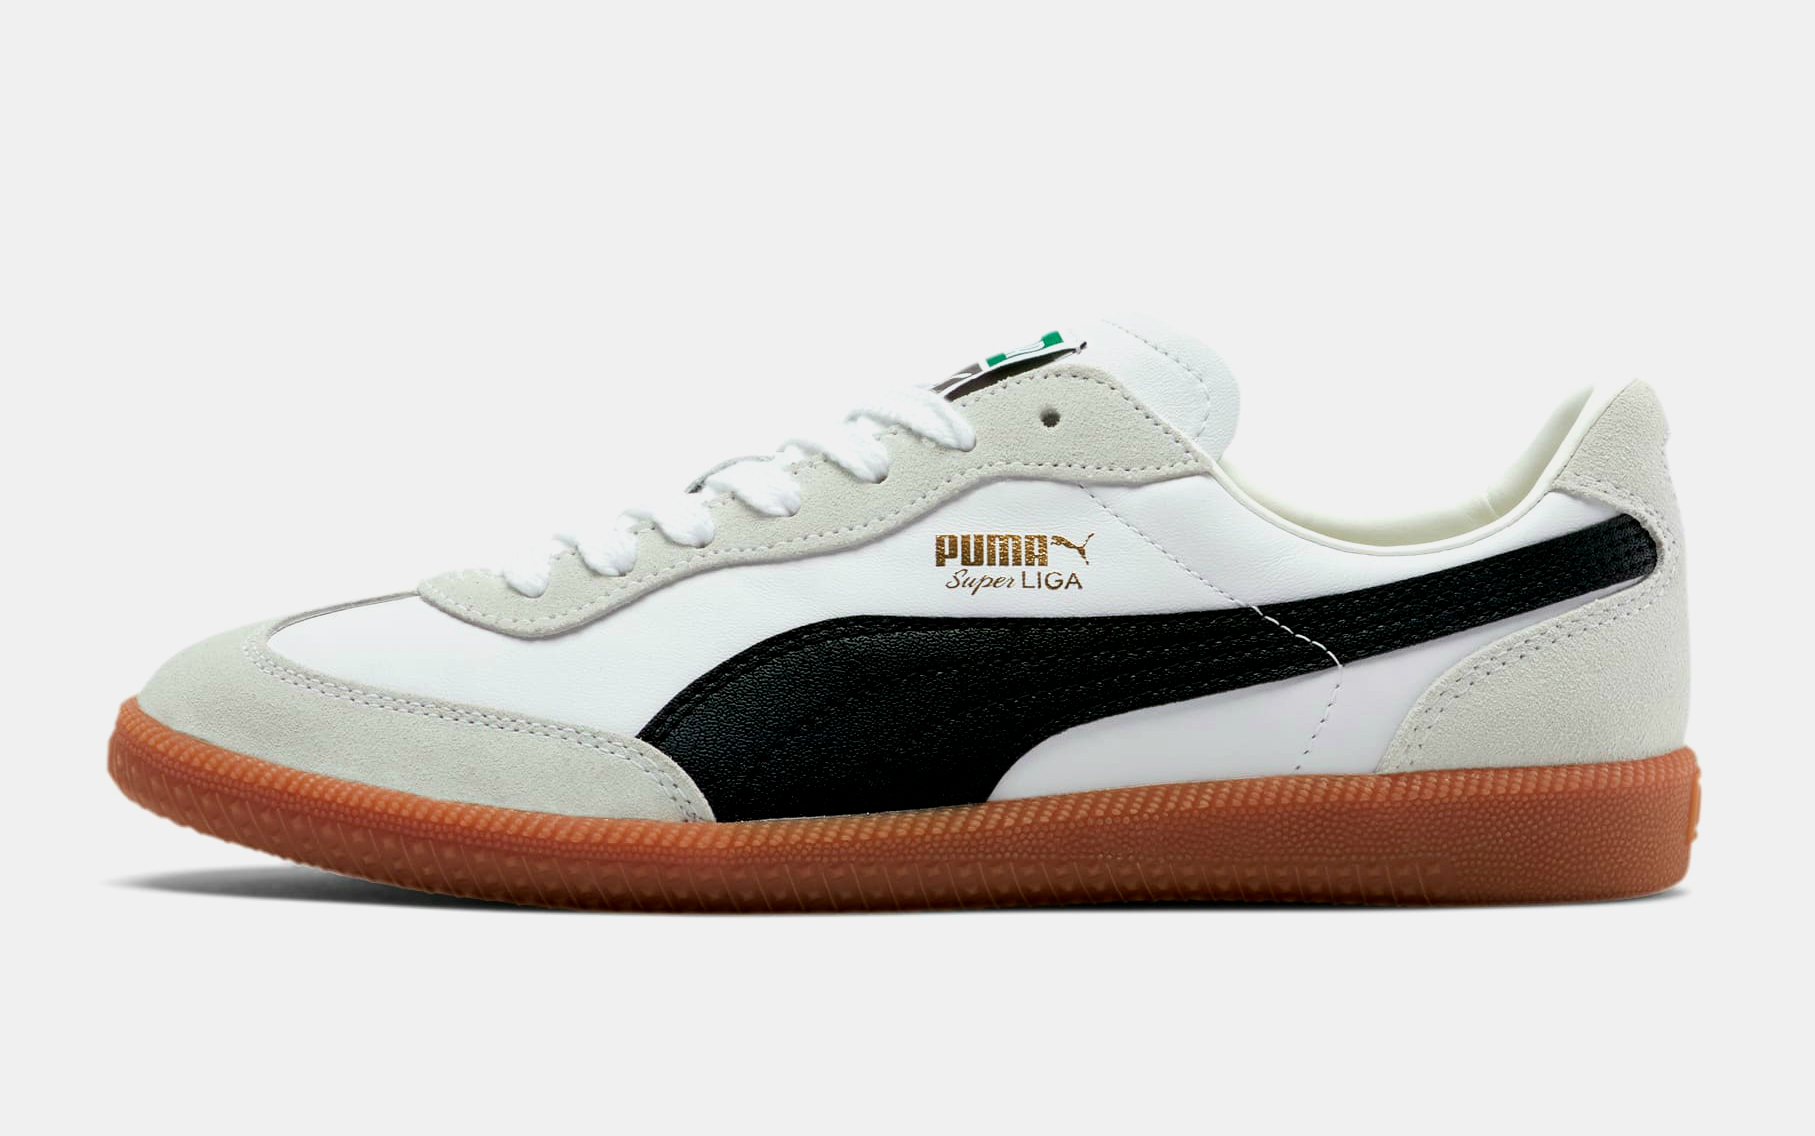 Puma Super Liga OG Retro Sneakers